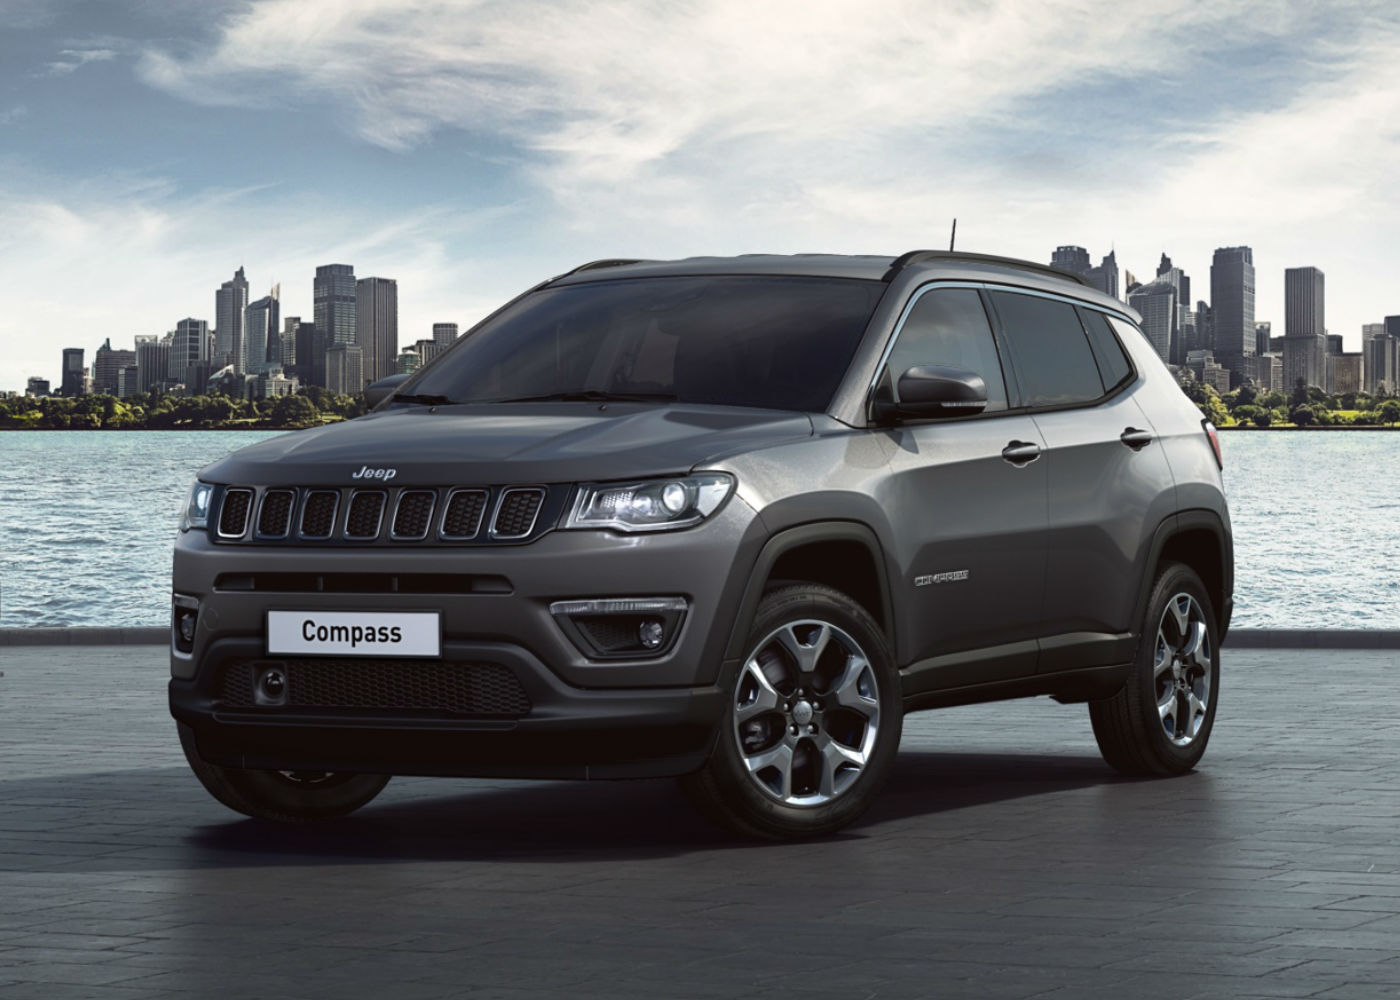 JEEP Compass 1.4 MultiAir 170 CV aut. 4WD Limited MY19 Granite Crystal Km 0